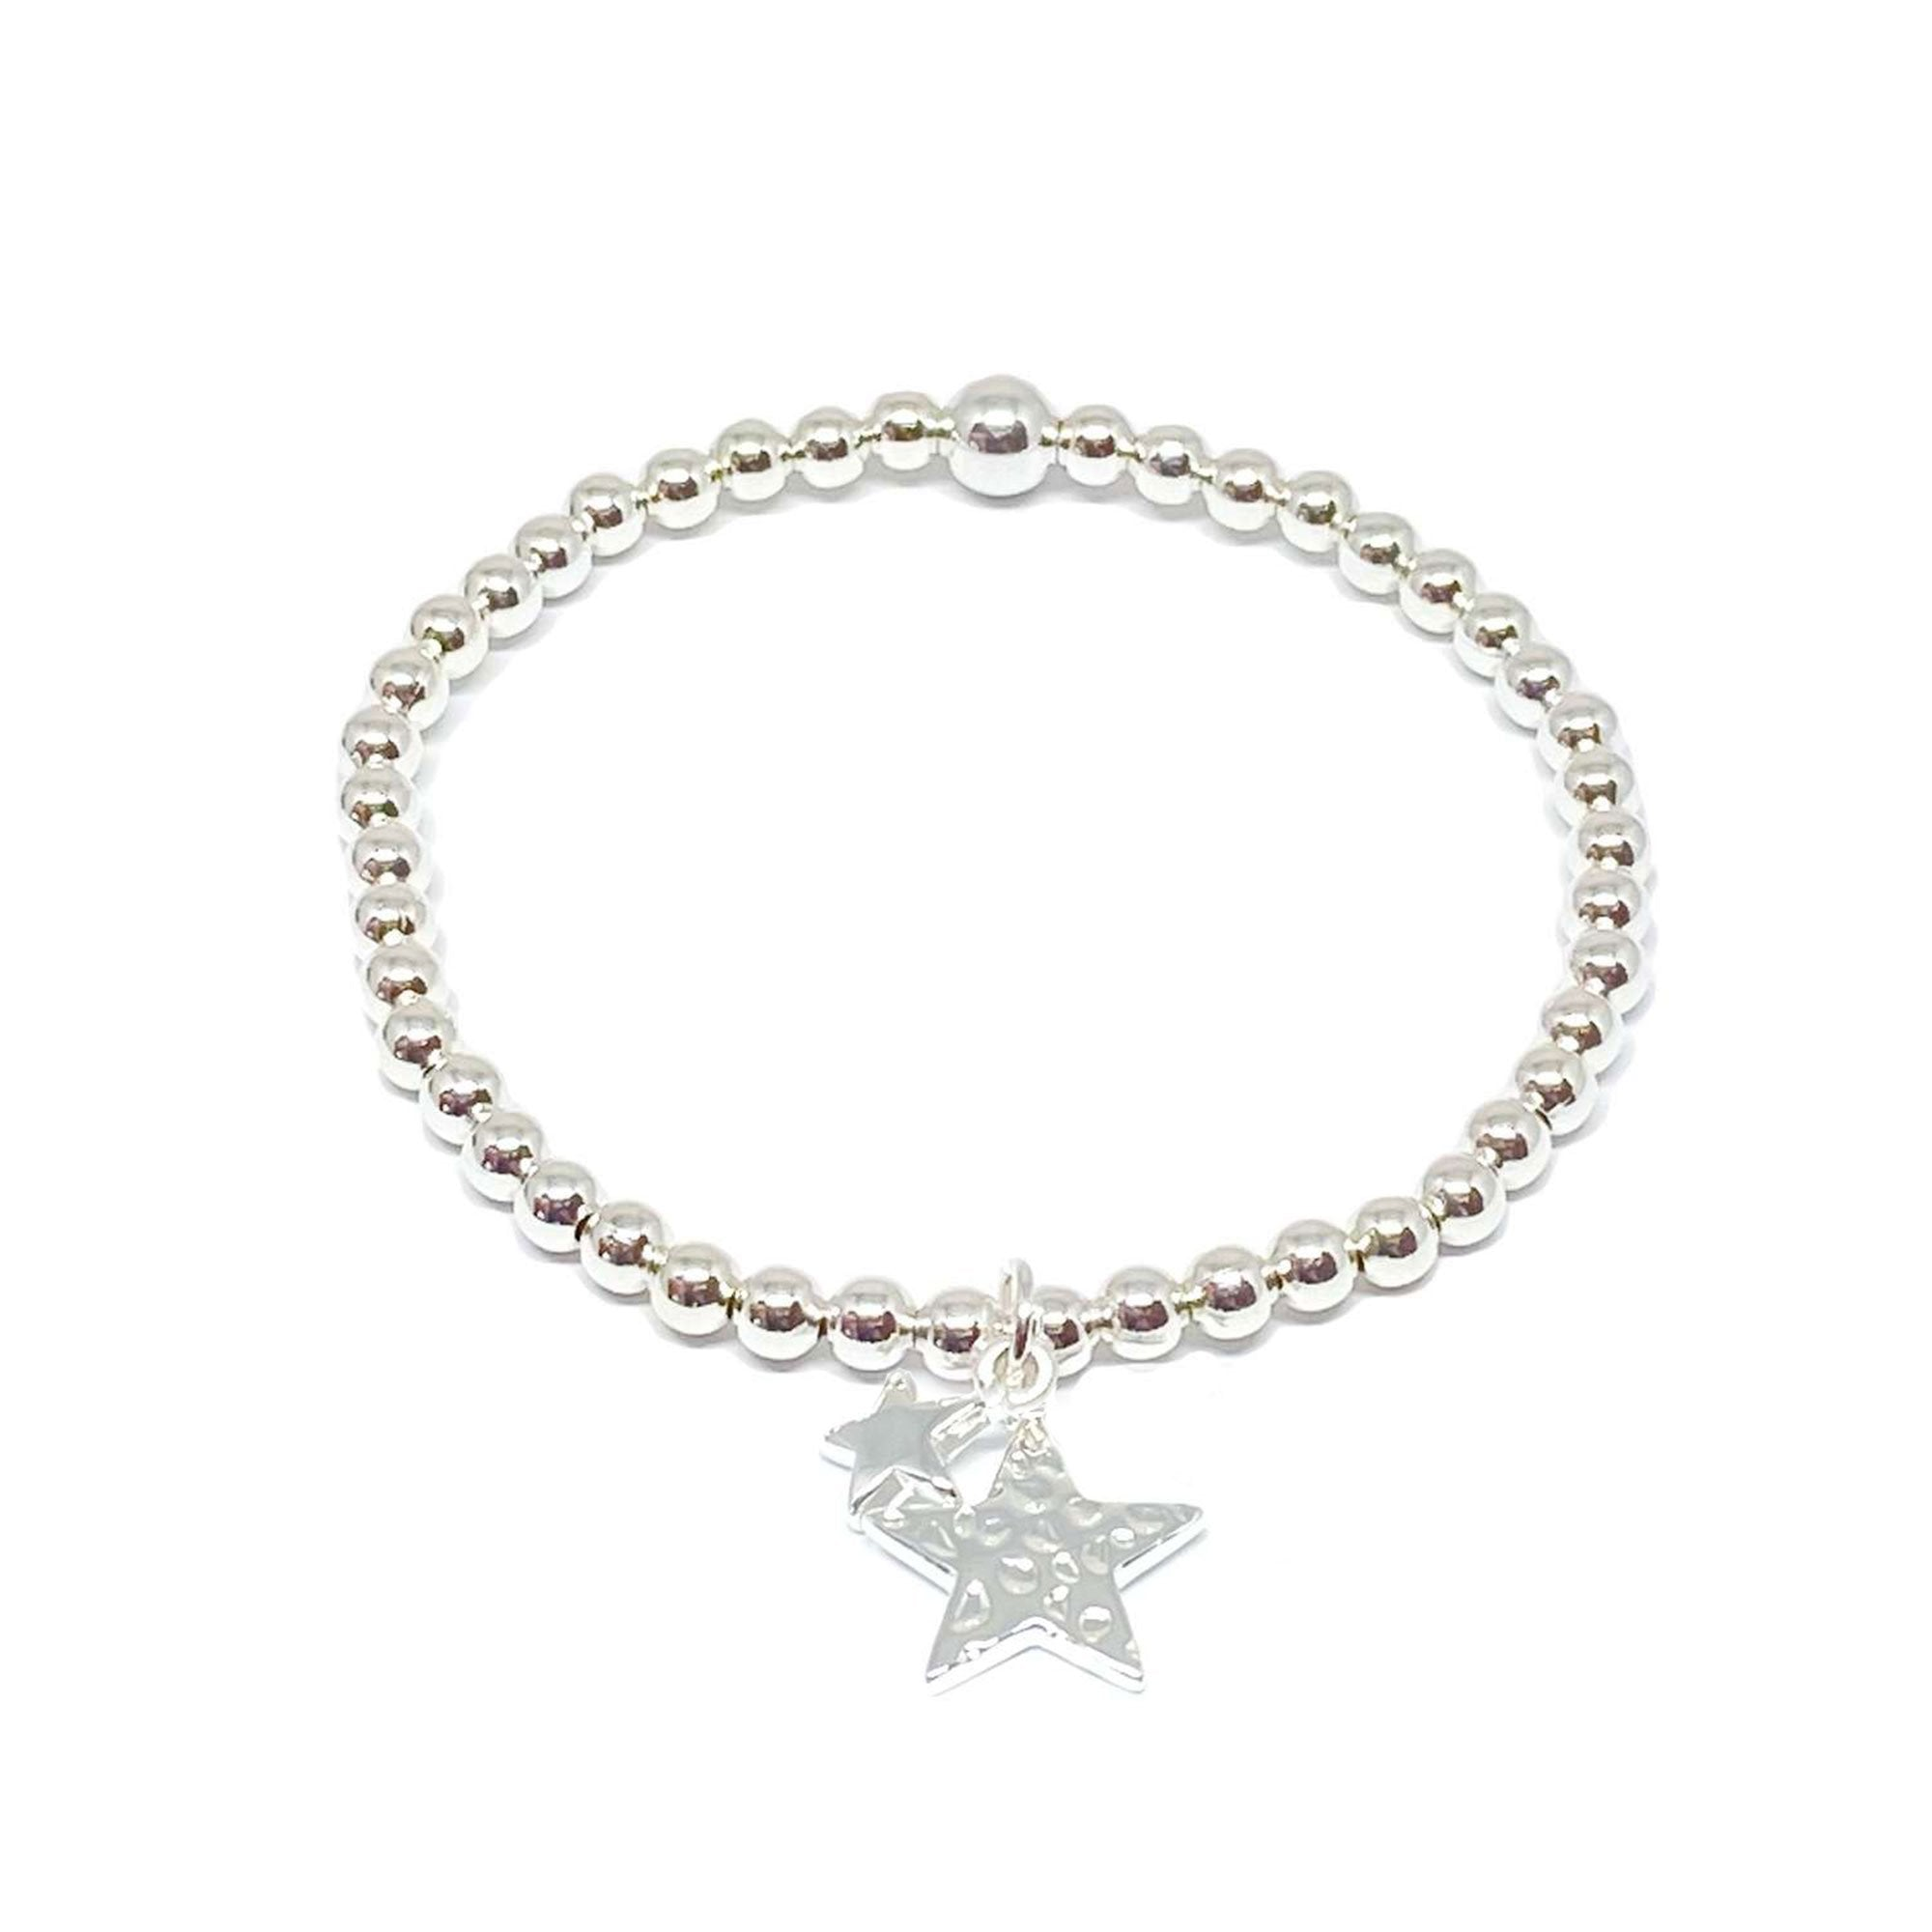 Clementine | Silver Double Star Bracelet | BoxTree | Send a Gift